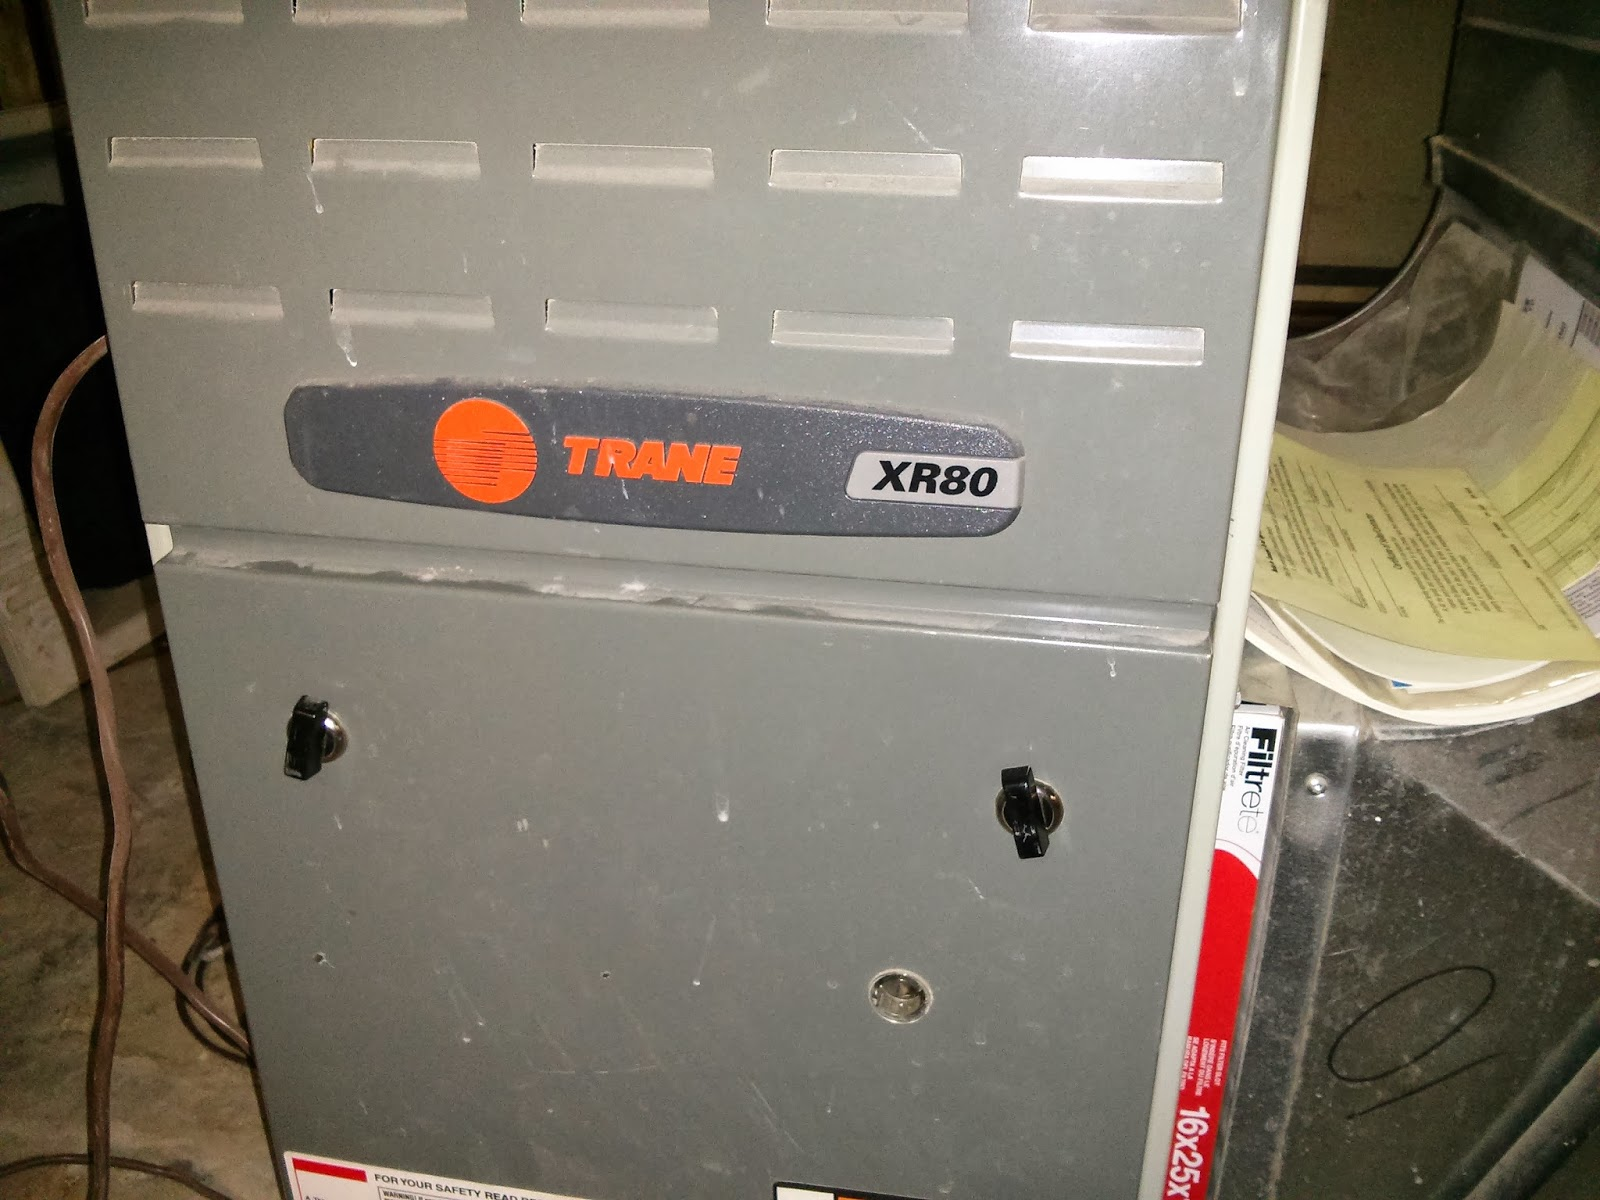 trane xr80 furnace problems vs nest thermostat this house needs work rh thishouseneedswork blogspot com Trane XR80 Control Board PDF trane xr80 furnace installation manual